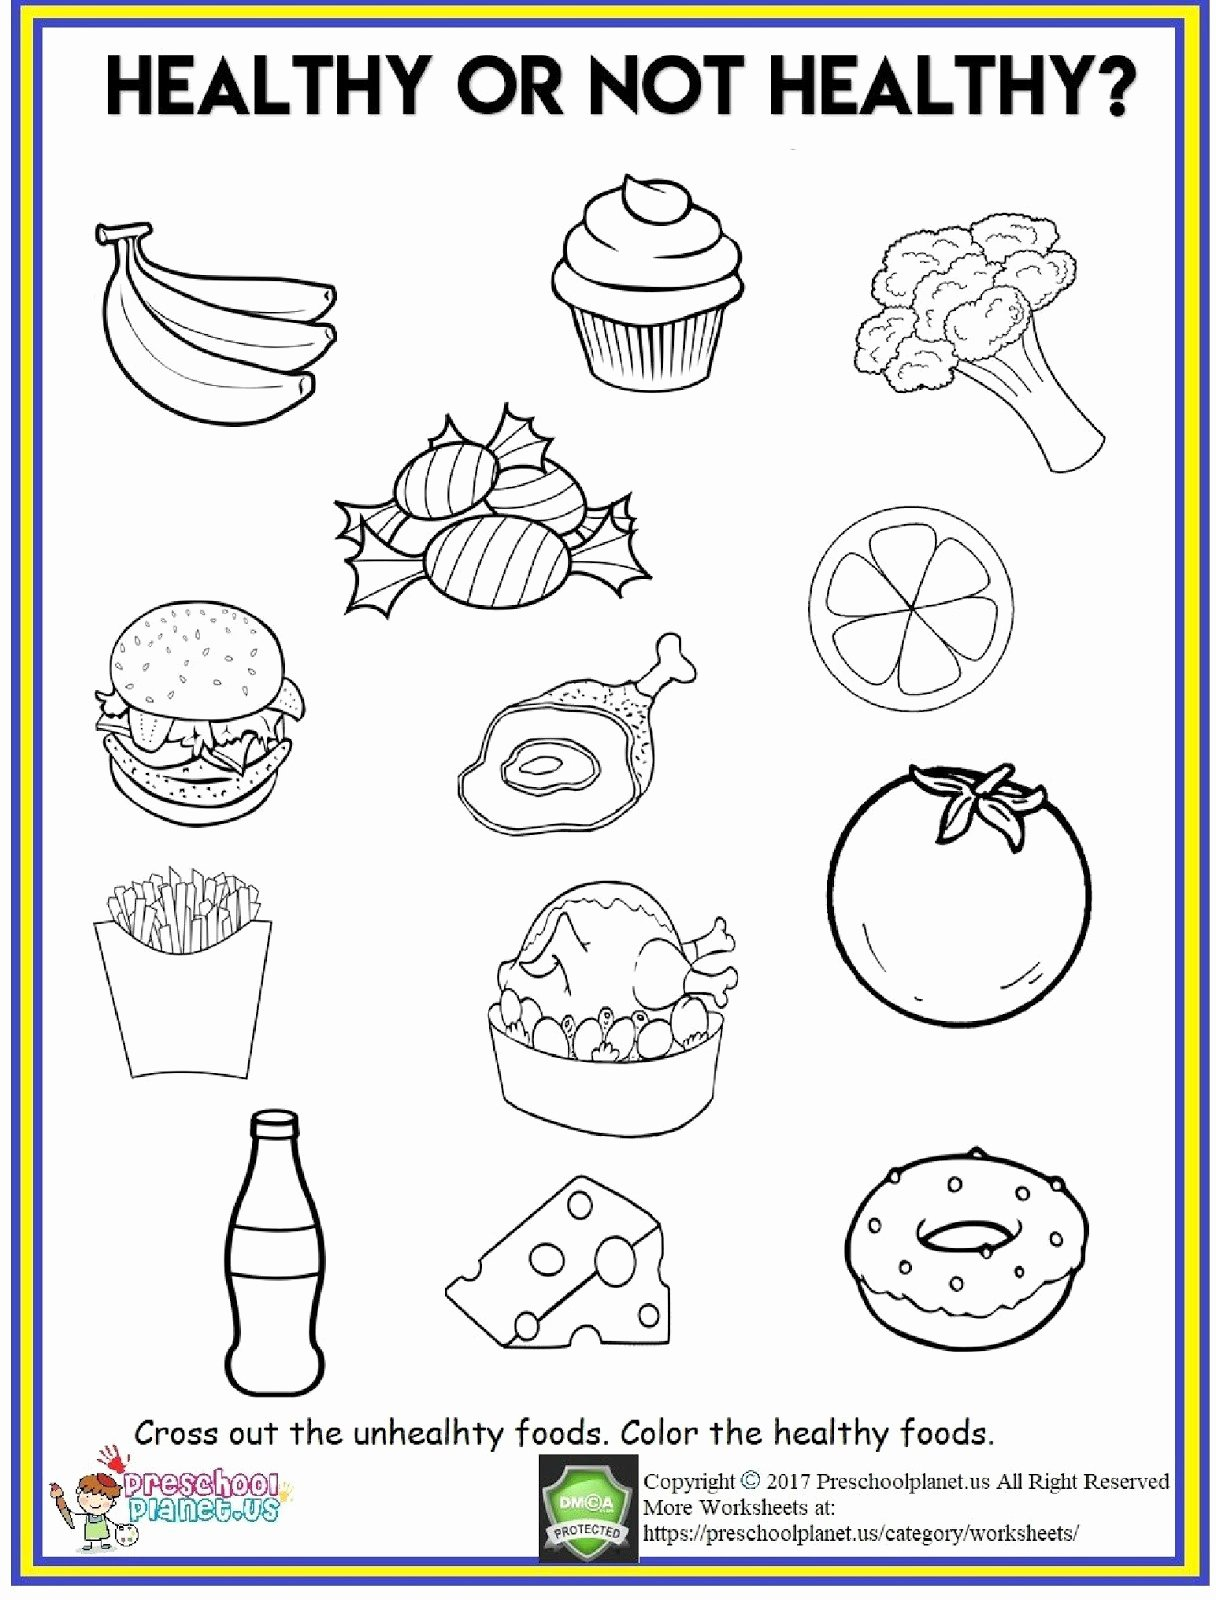 Worksheets for Preschoolers On Fruits and Vegetables Kids 4 Food Worksheets Preschool Fruits and Ve Ables